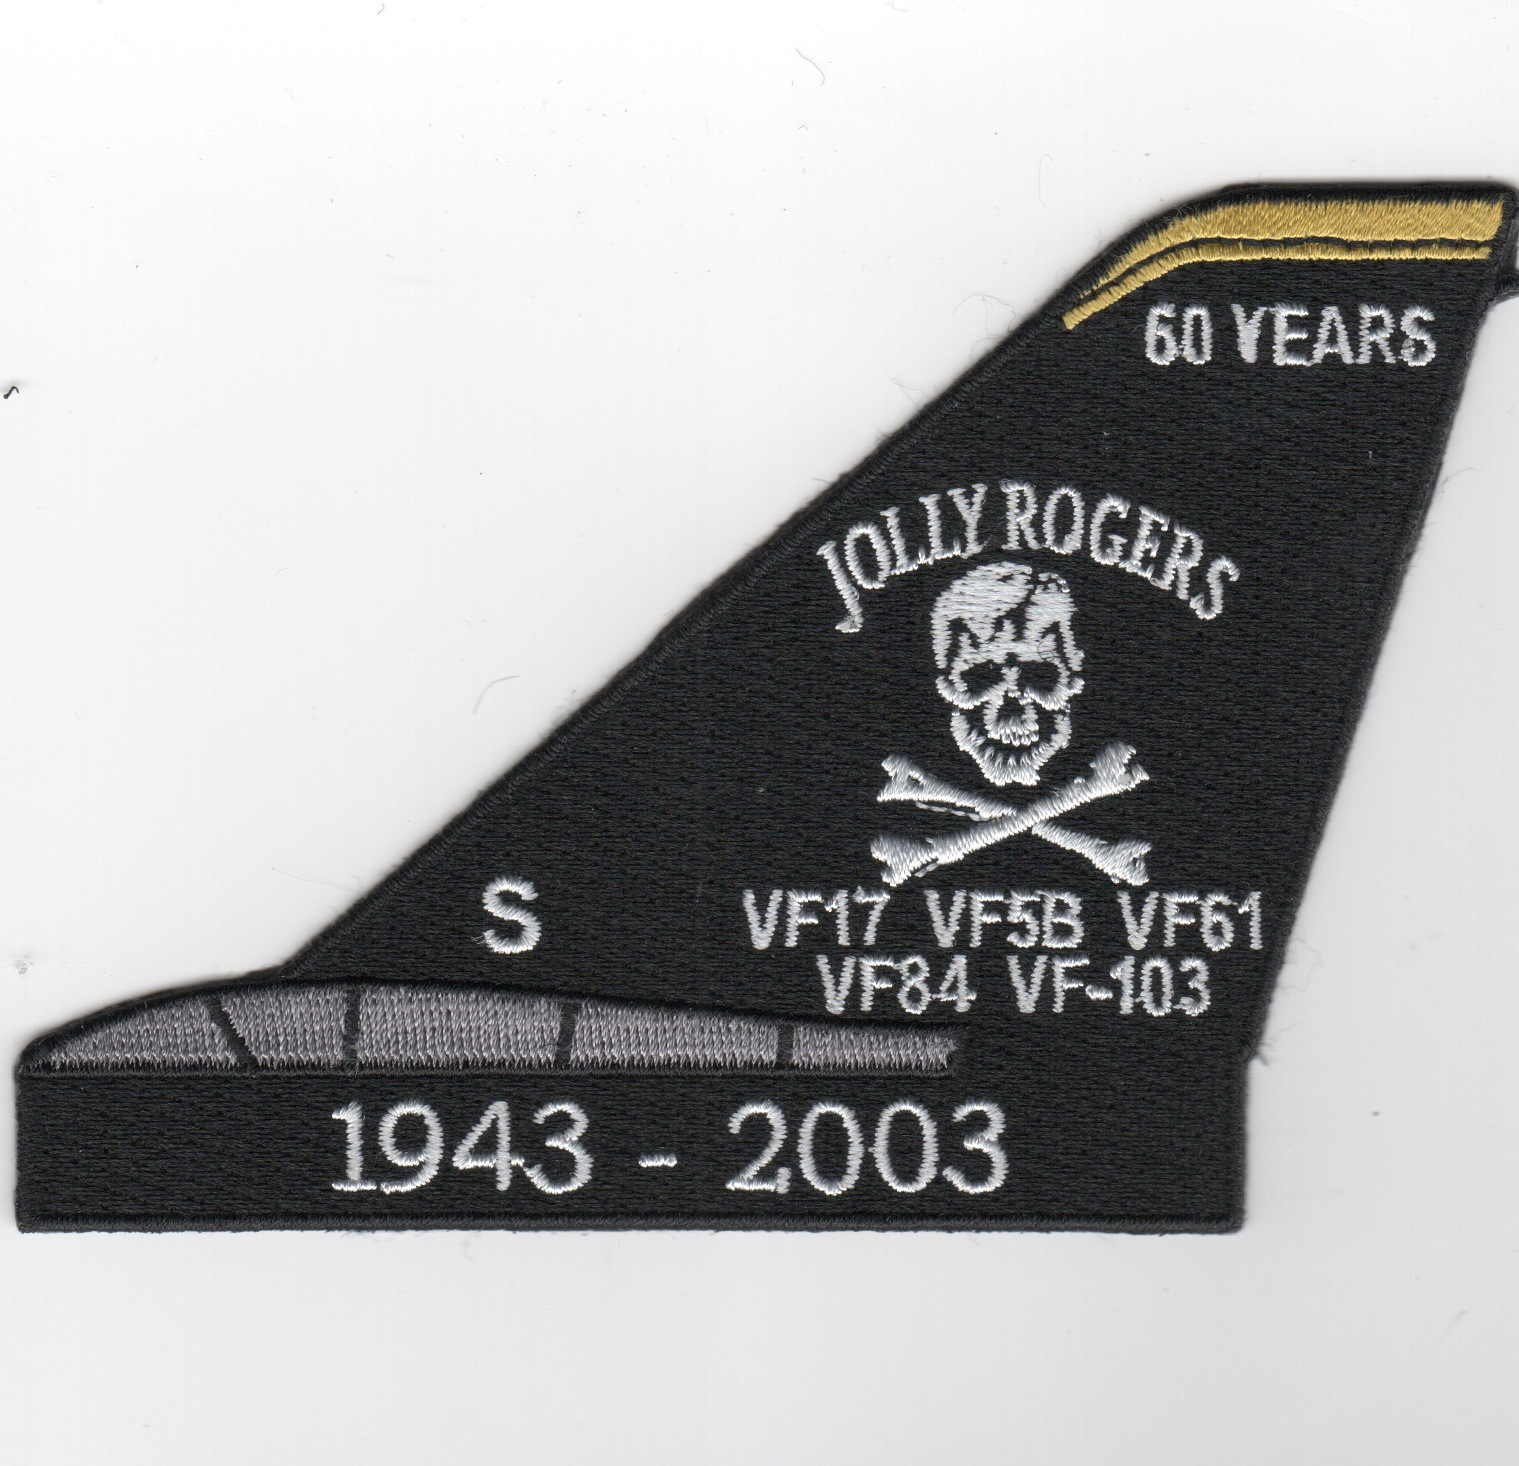 VF-103 F-14 '60-YEARS' Tomcat Tail Fin (Black)